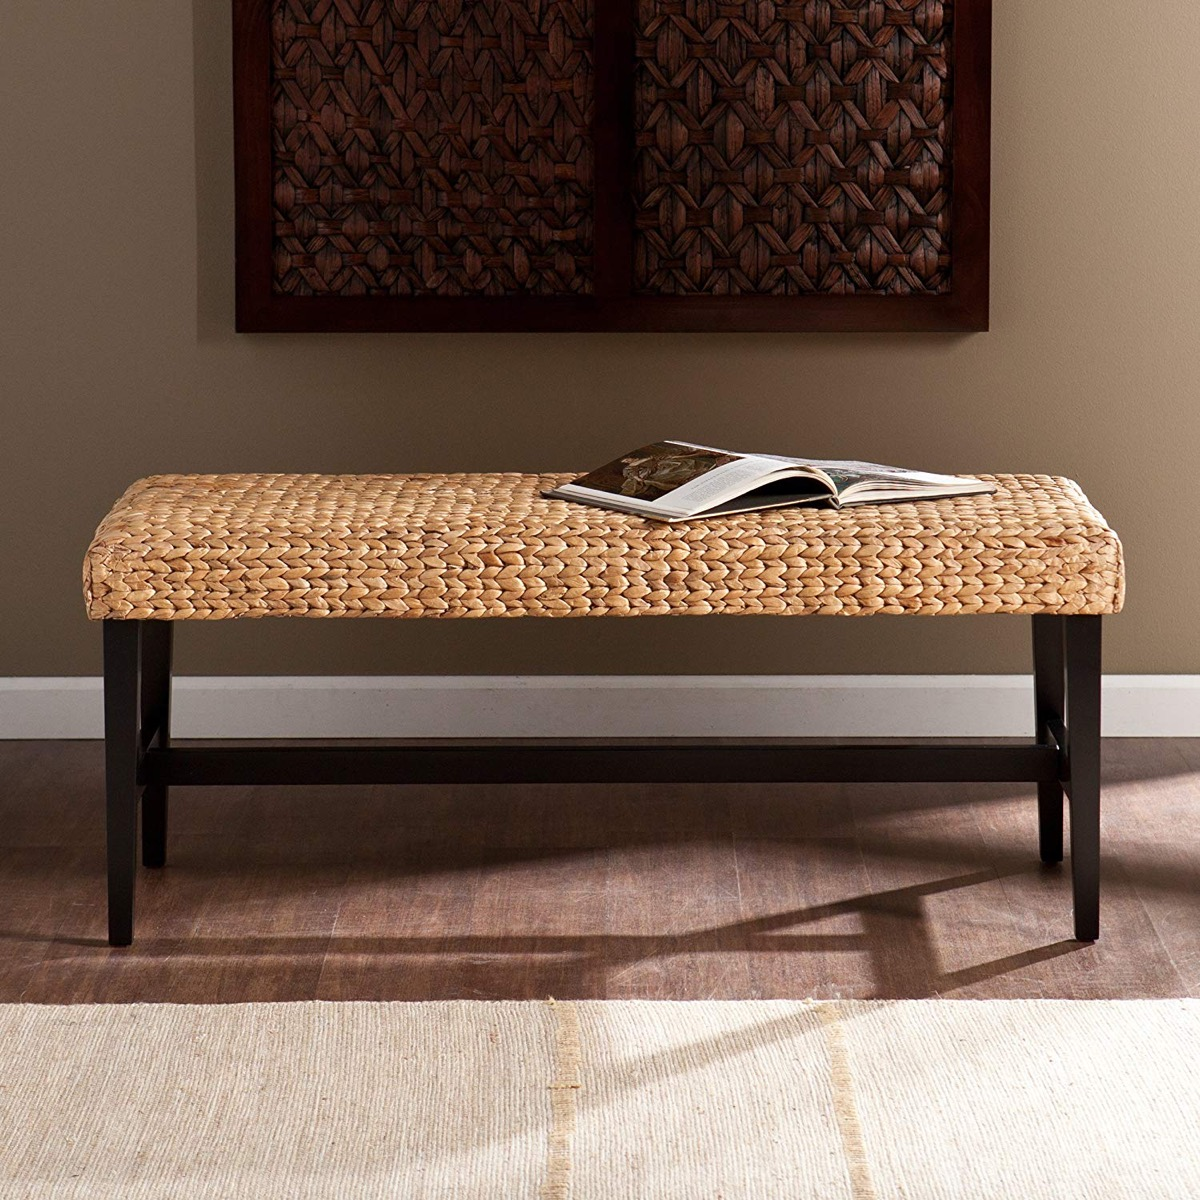 Woven-Entryway-Bench-Hyancinth-Weave-Seagrass-Seat-With-Black-Legs